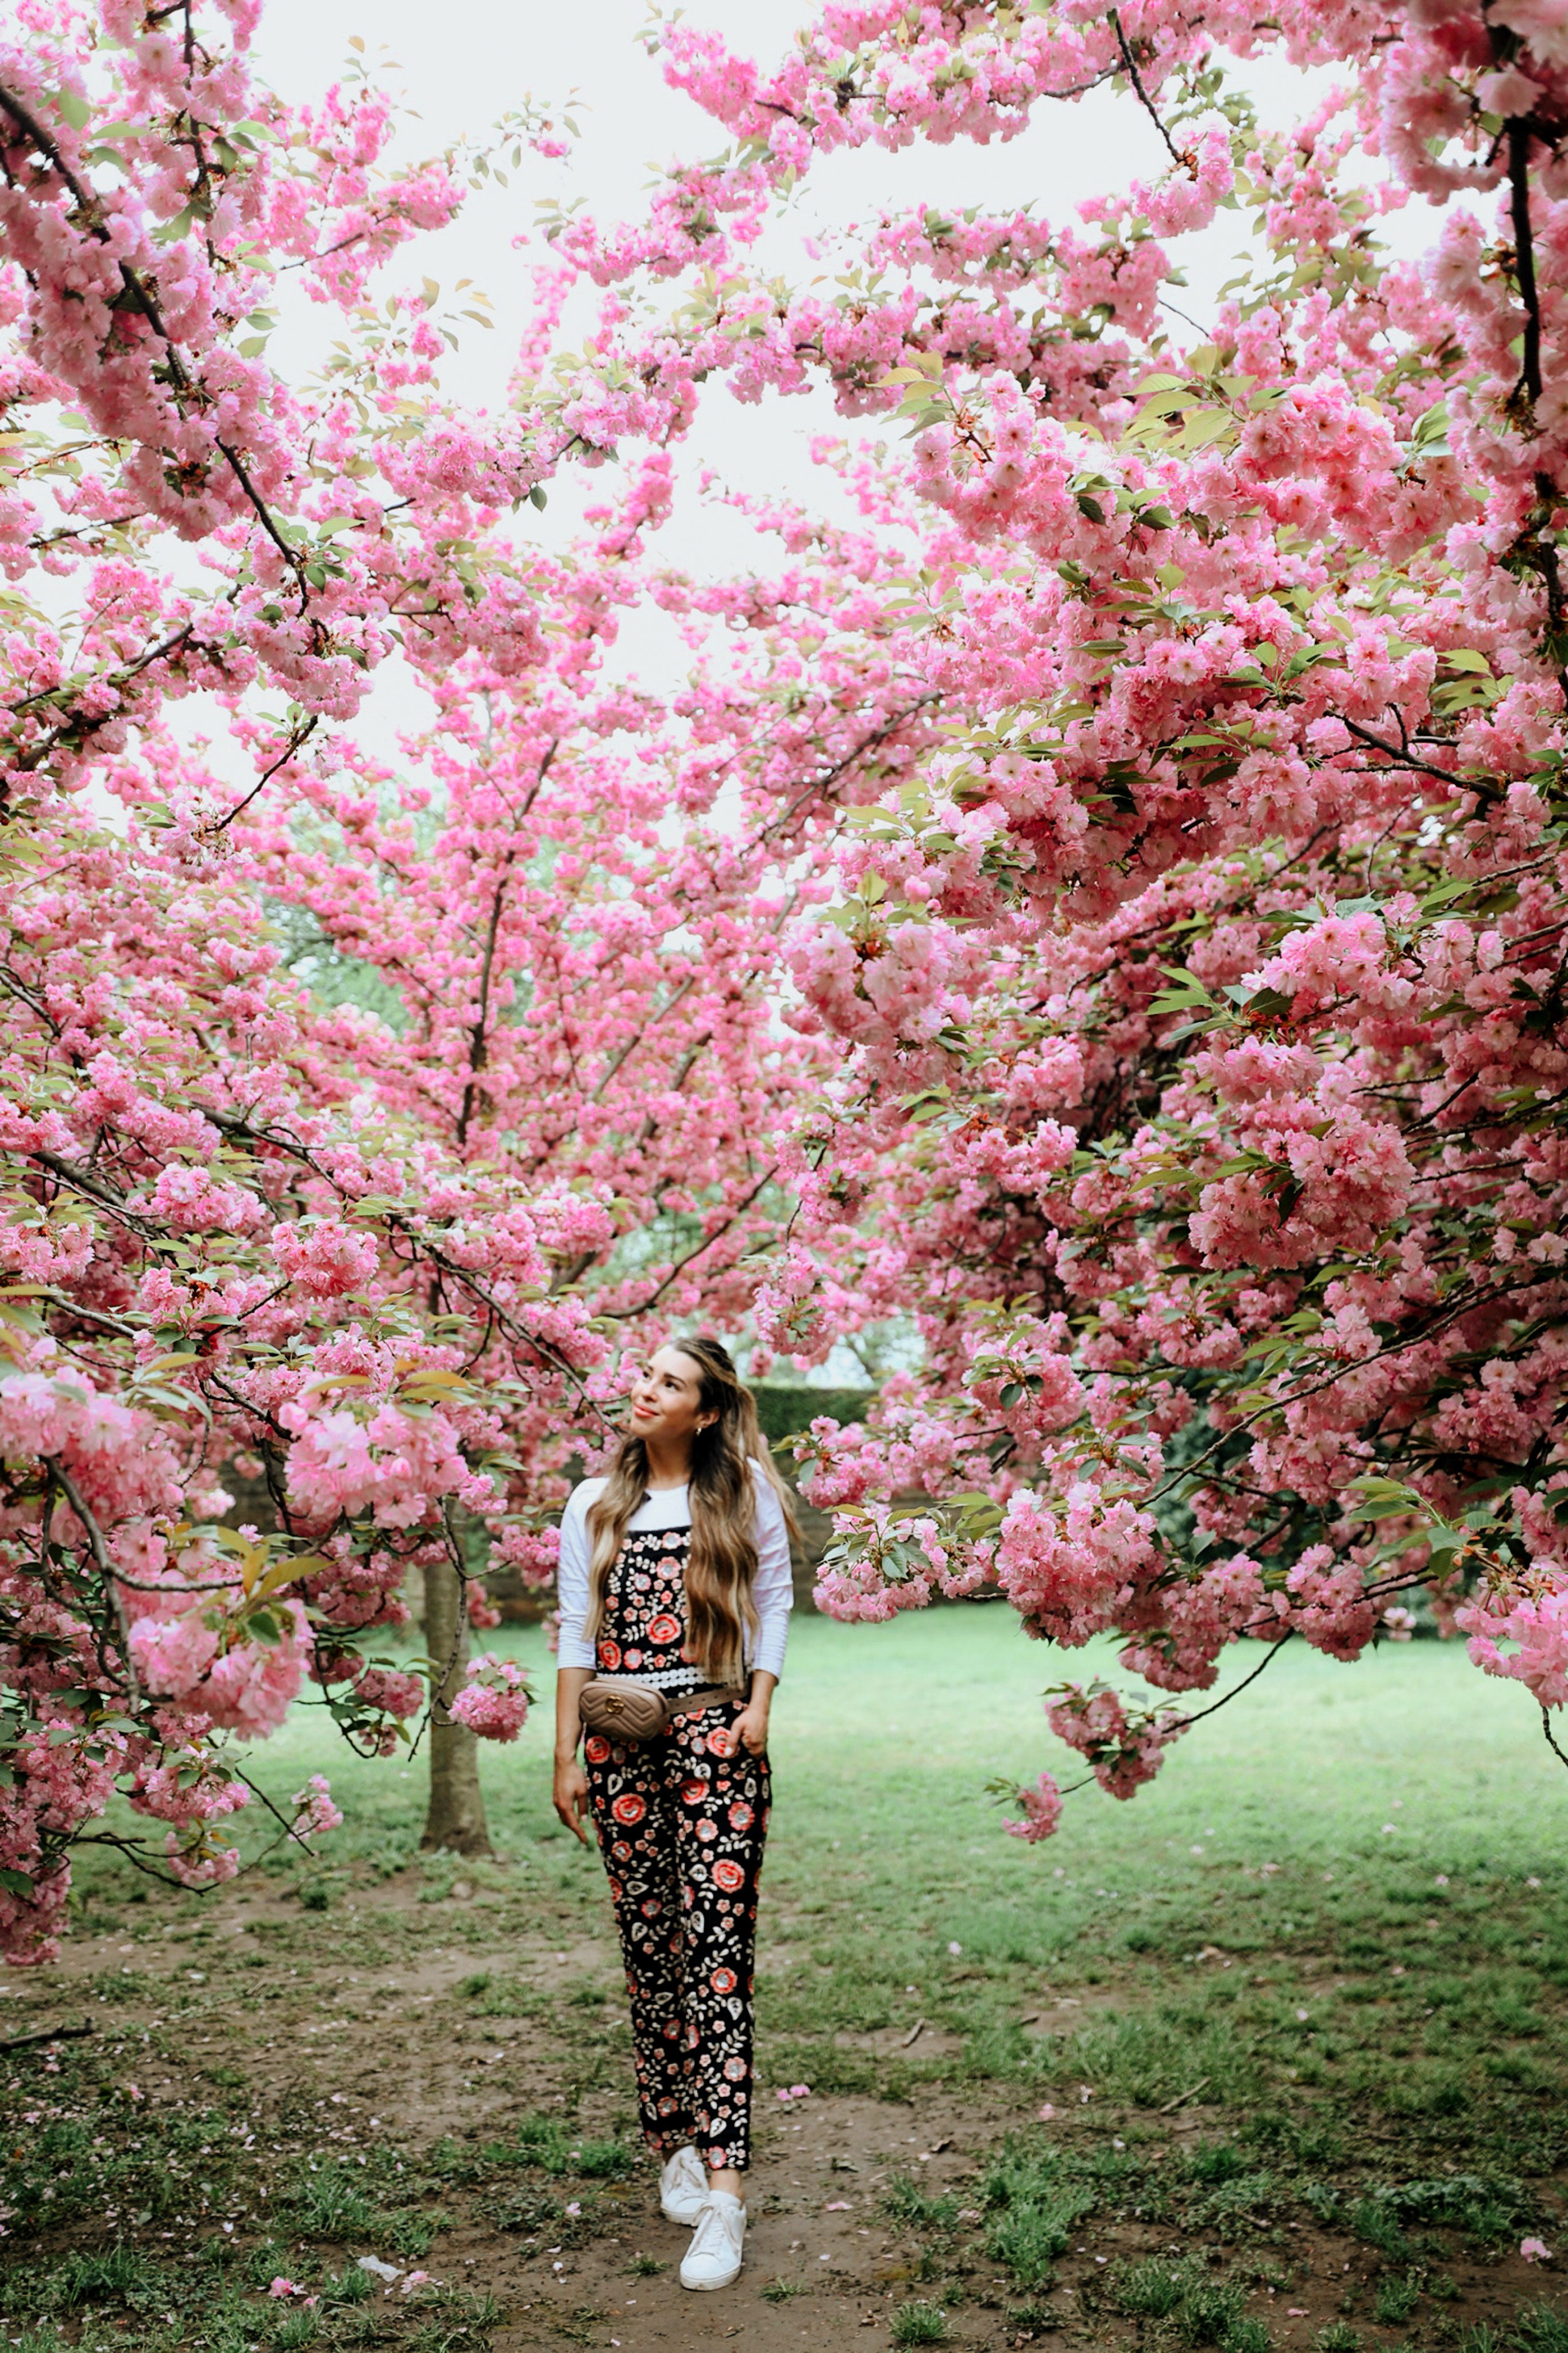 Washington D.C. Travel Guide - Cherry Blossoms